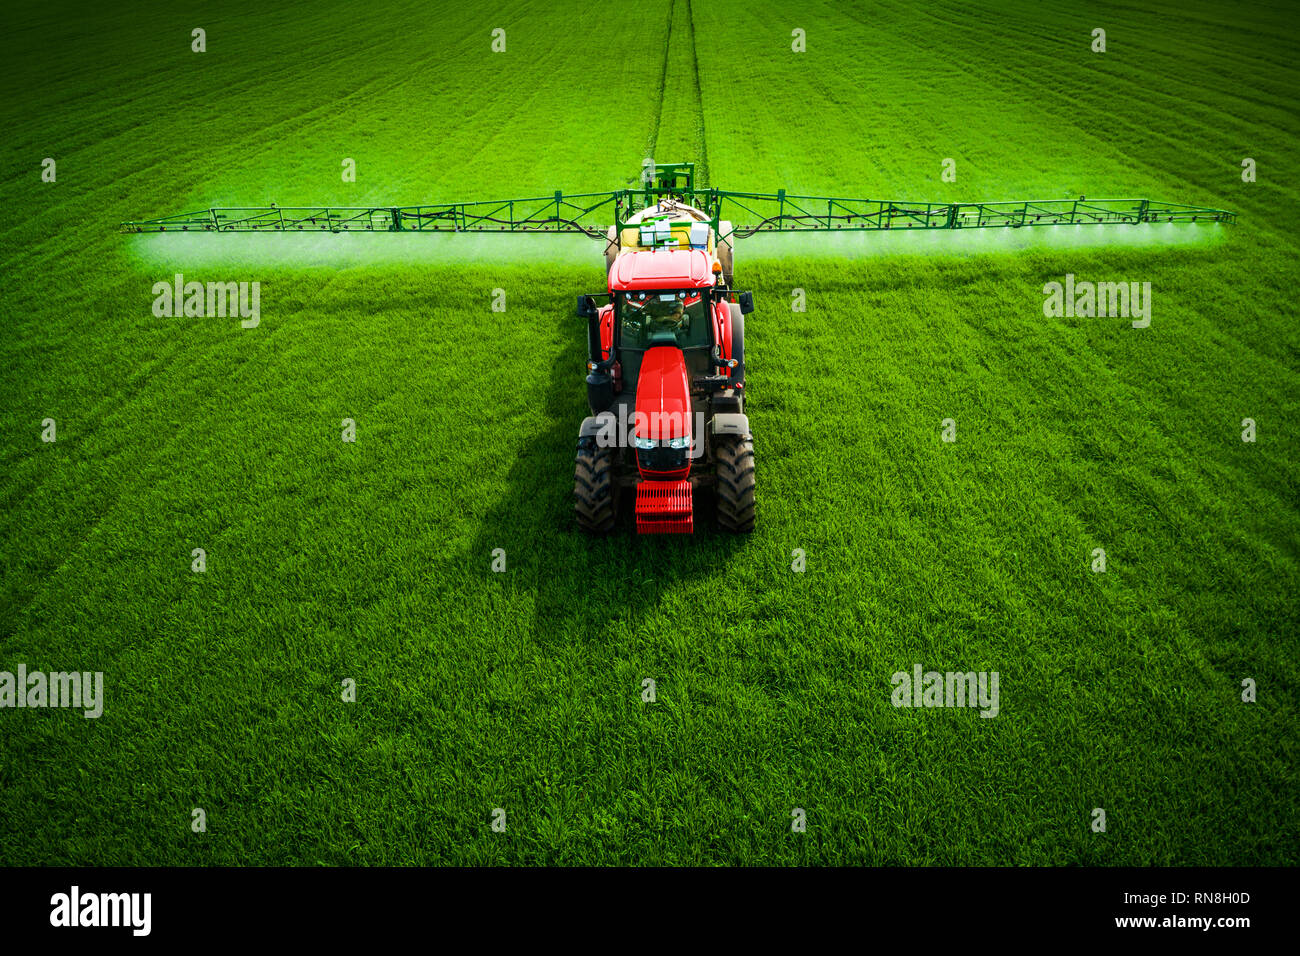 Фarming tractor plowing and spraying on green wheat field, aerial drone view - Stock Image